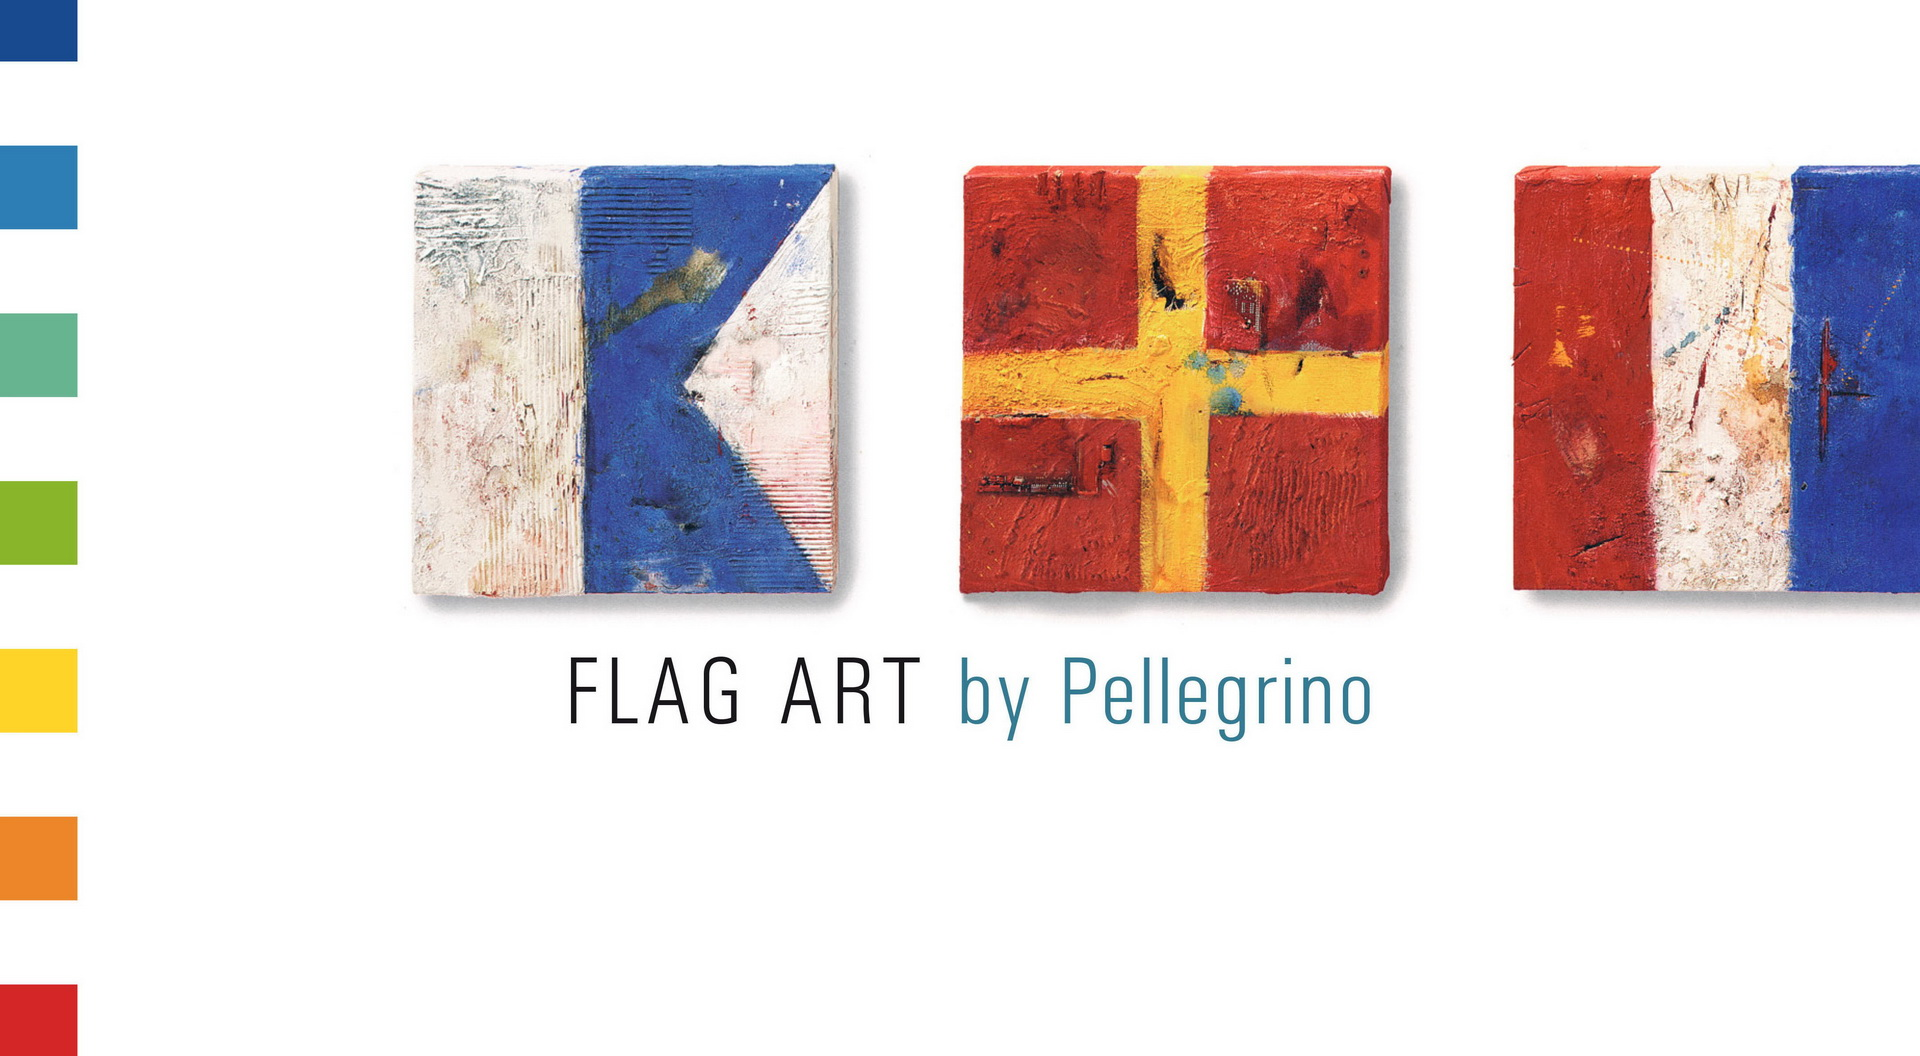 Pellegrino-flagart-1920air01